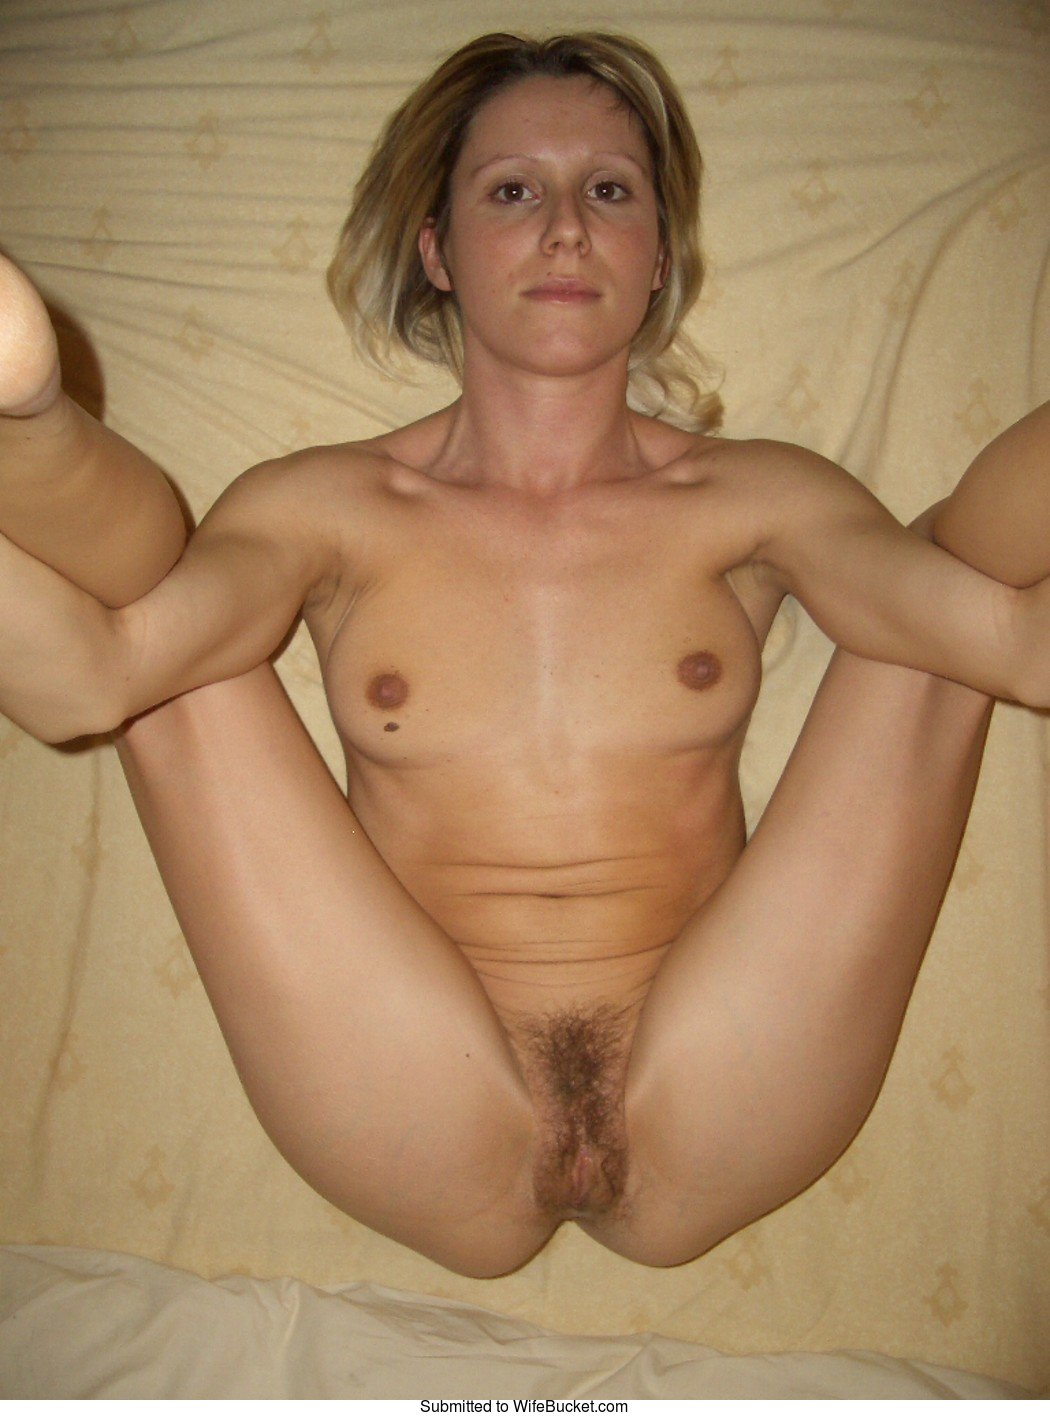 Masturbating girl tumblr